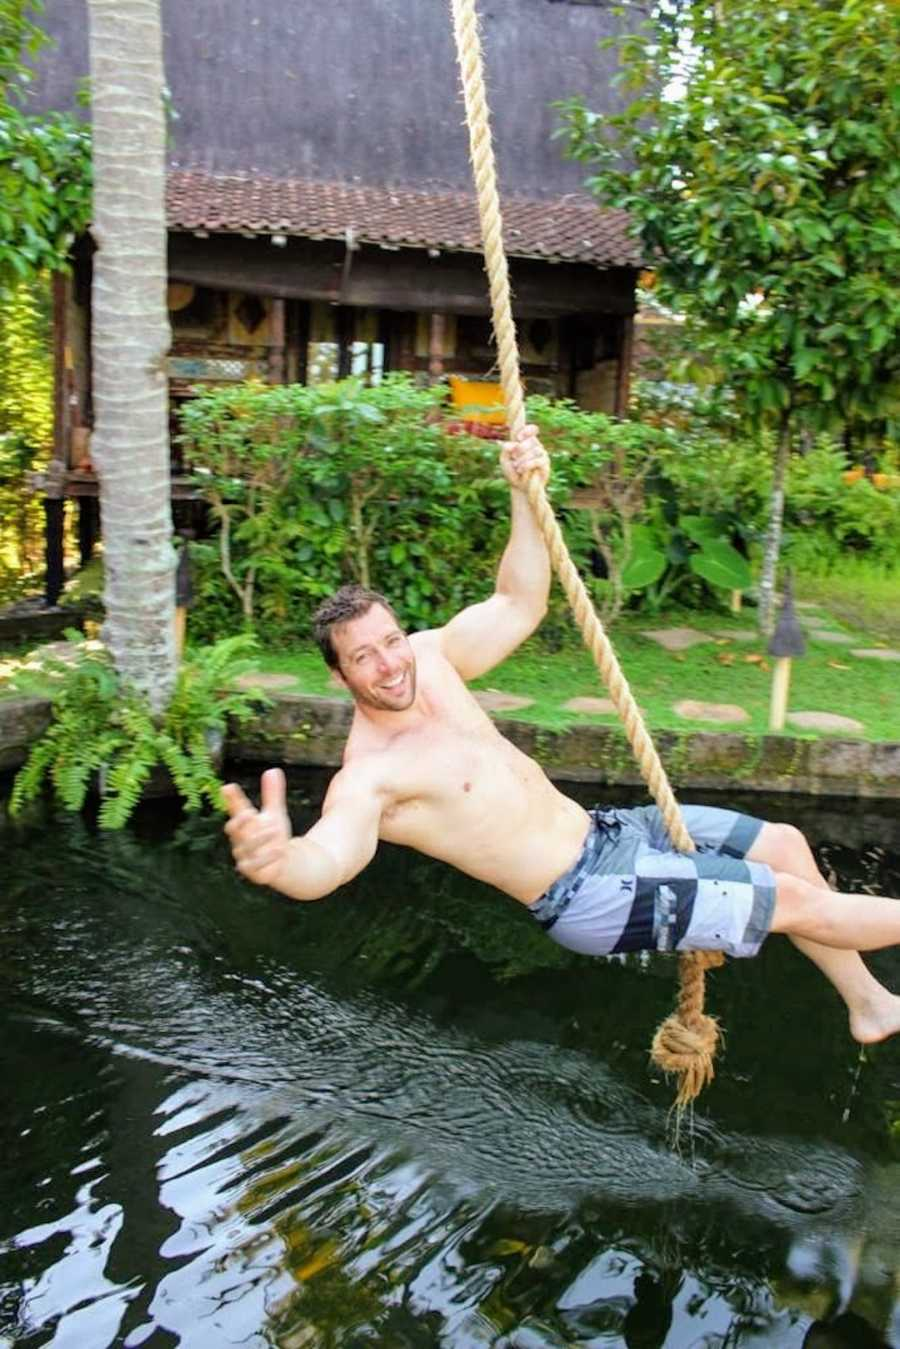 Man swinging on rope above body of water